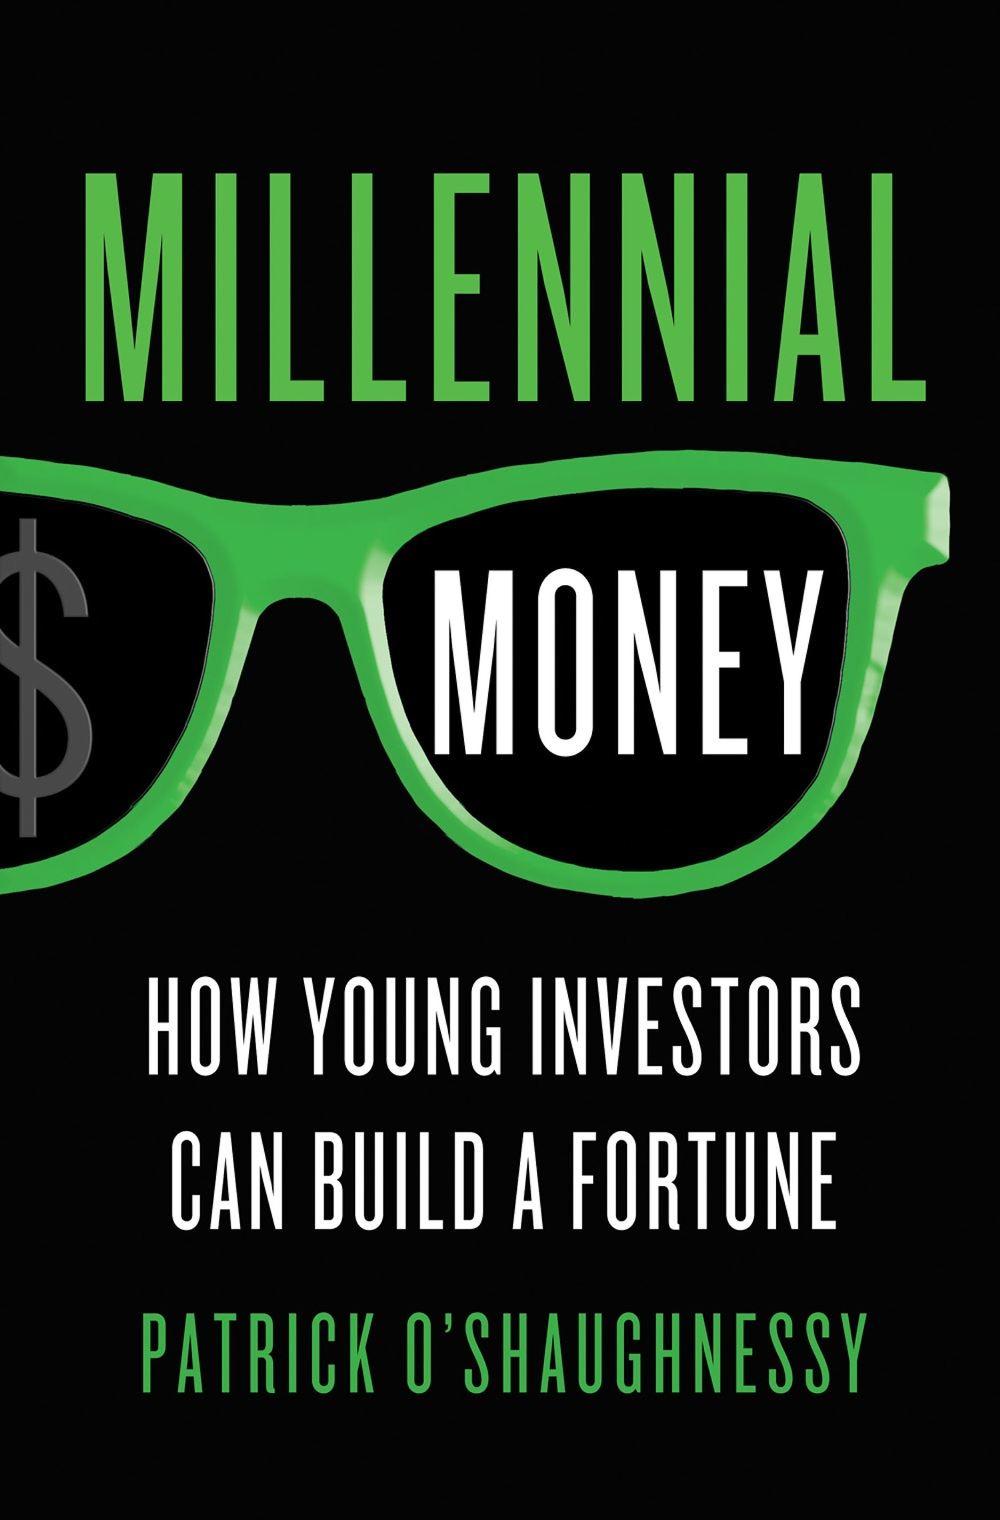 Millennial Money jacket (5).jpg